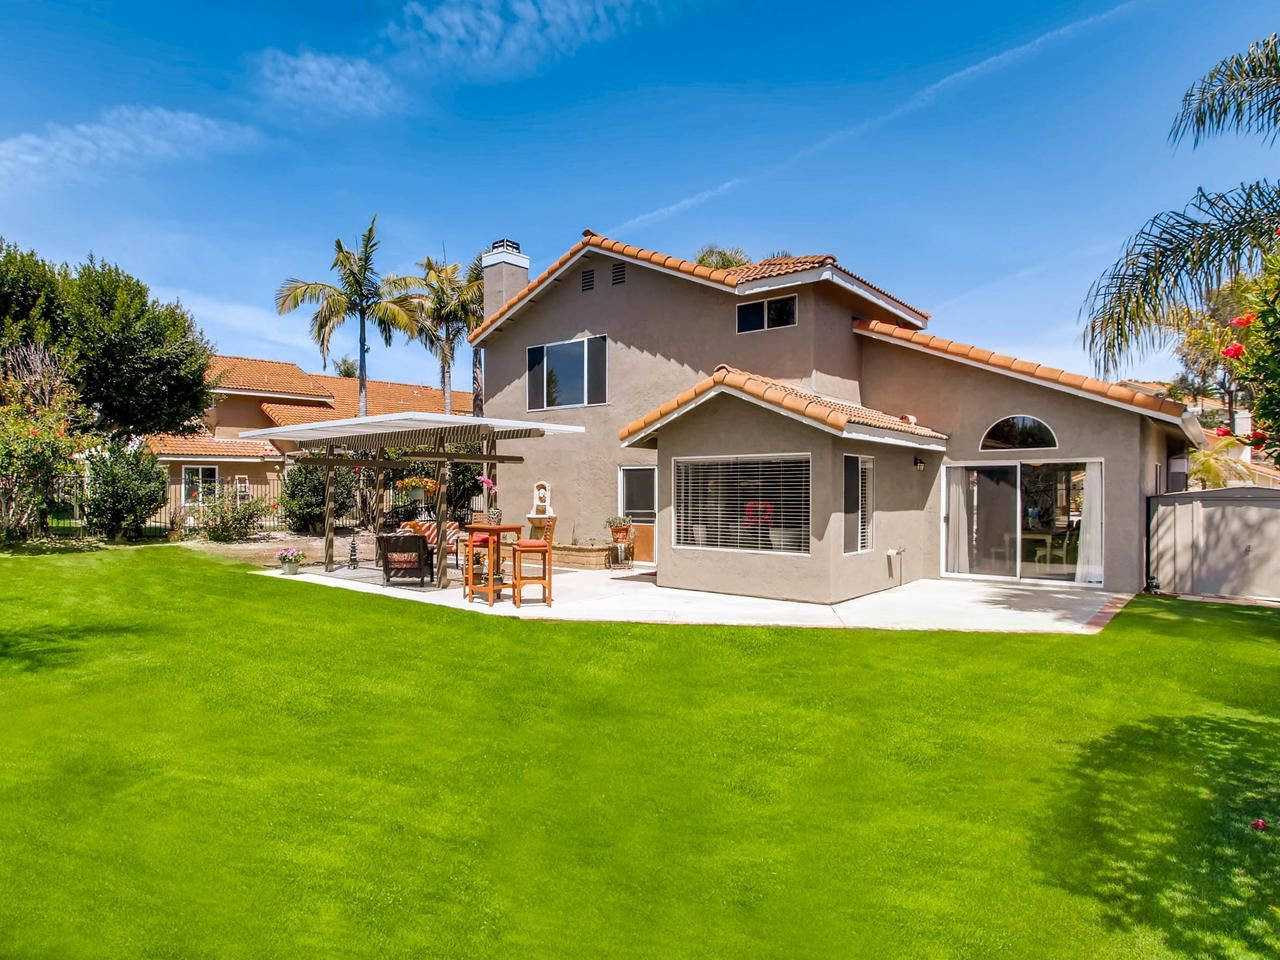 Main Photo: OCEANSIDE House for sale : 5 bedrooms : 3341 Golfers